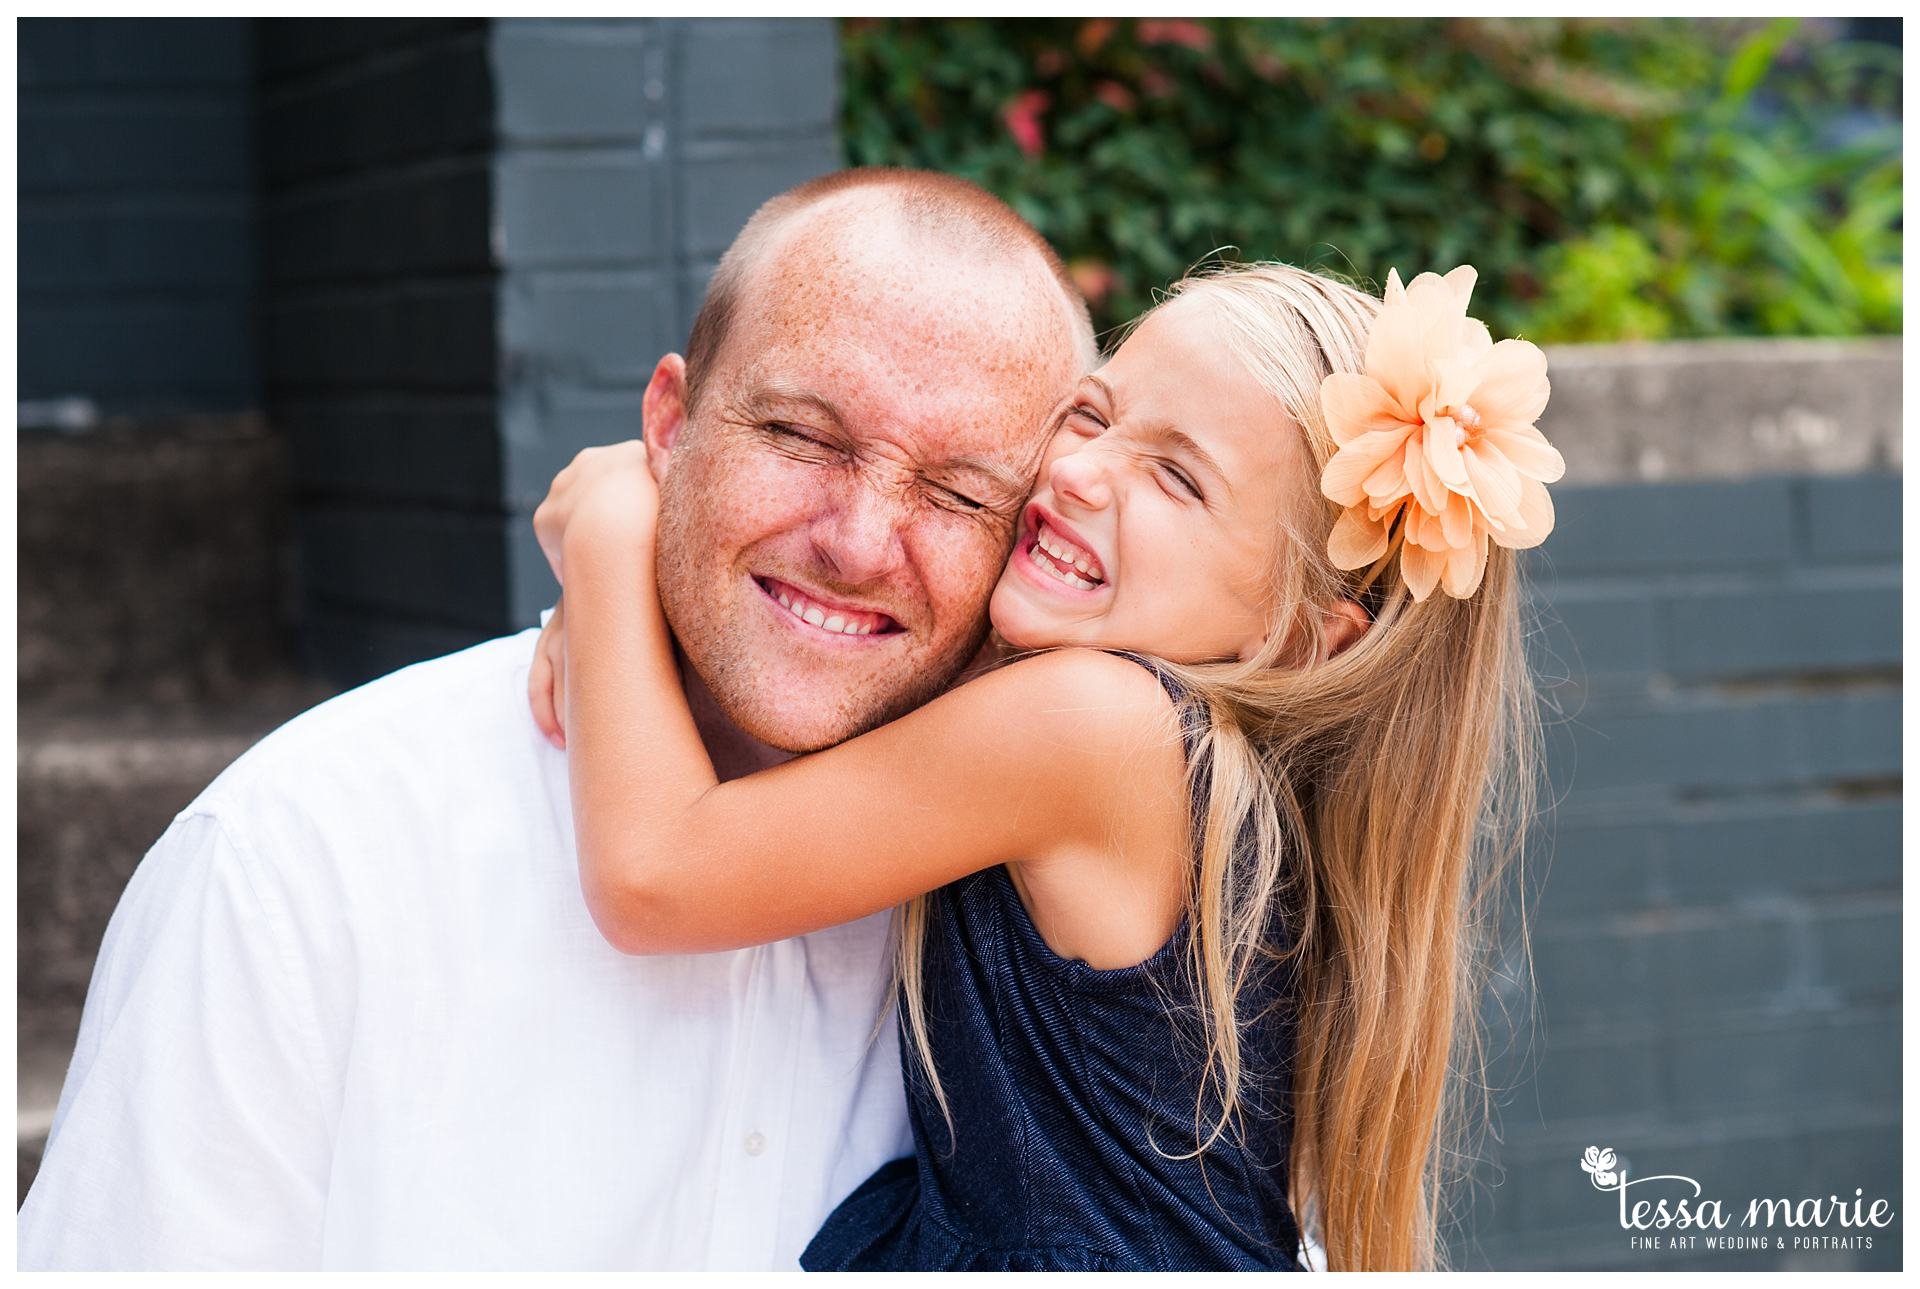 tessa_marie_weddings_legacy_story_focused_wedding_pictures_atlanta_wedding_photographer_family_pictures_portrait_Fine_art_memories_mothers_day_spring_moments_0253